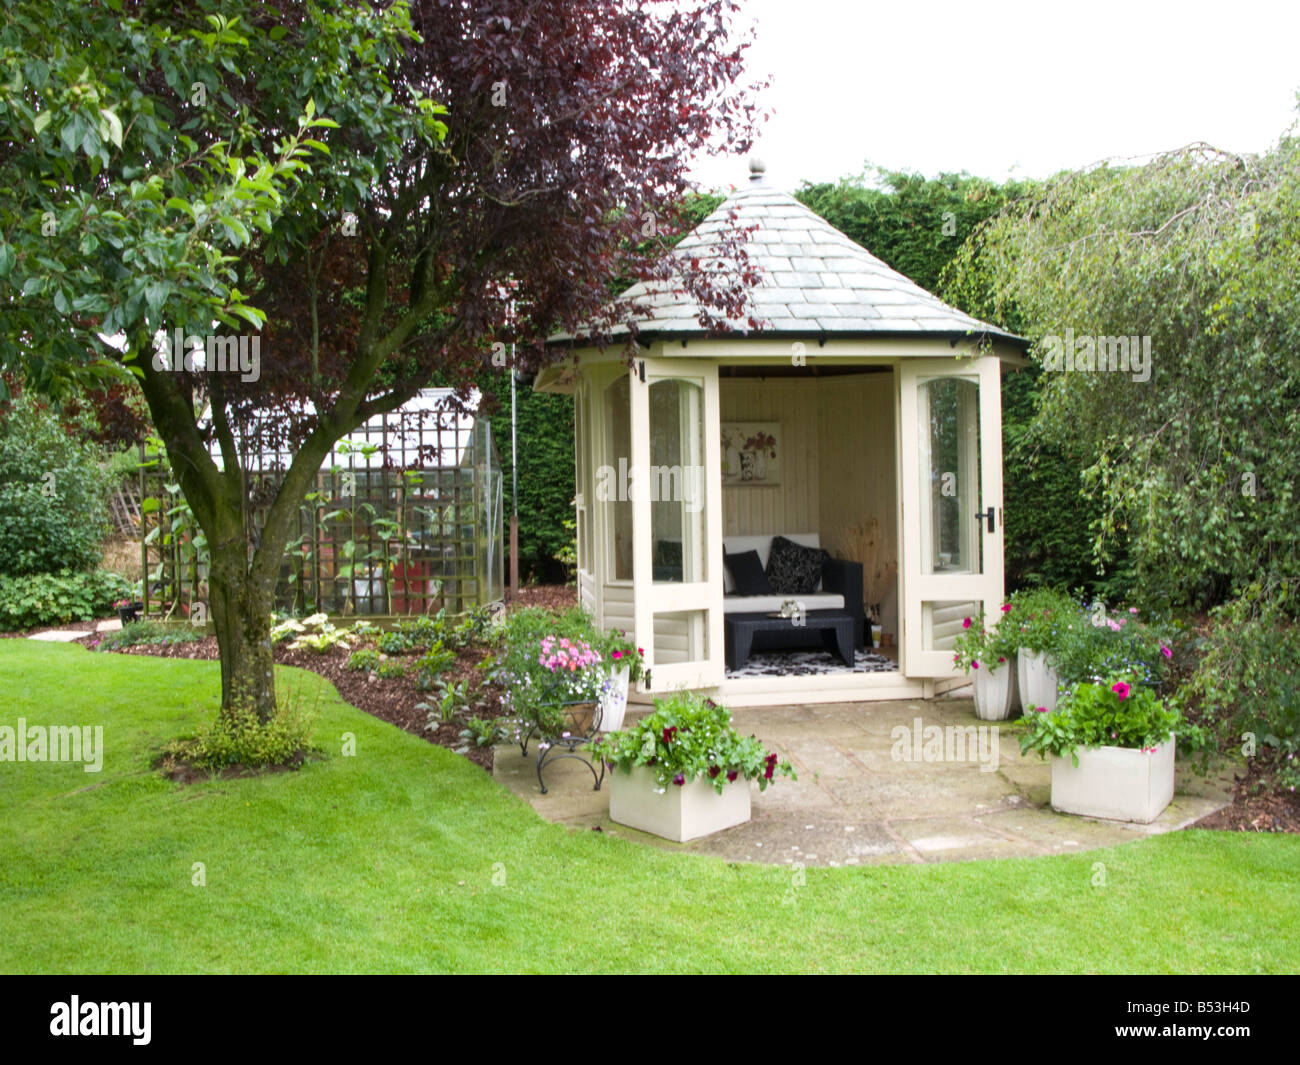 Summer house in a small garden stock photo royalty free for Small home garden